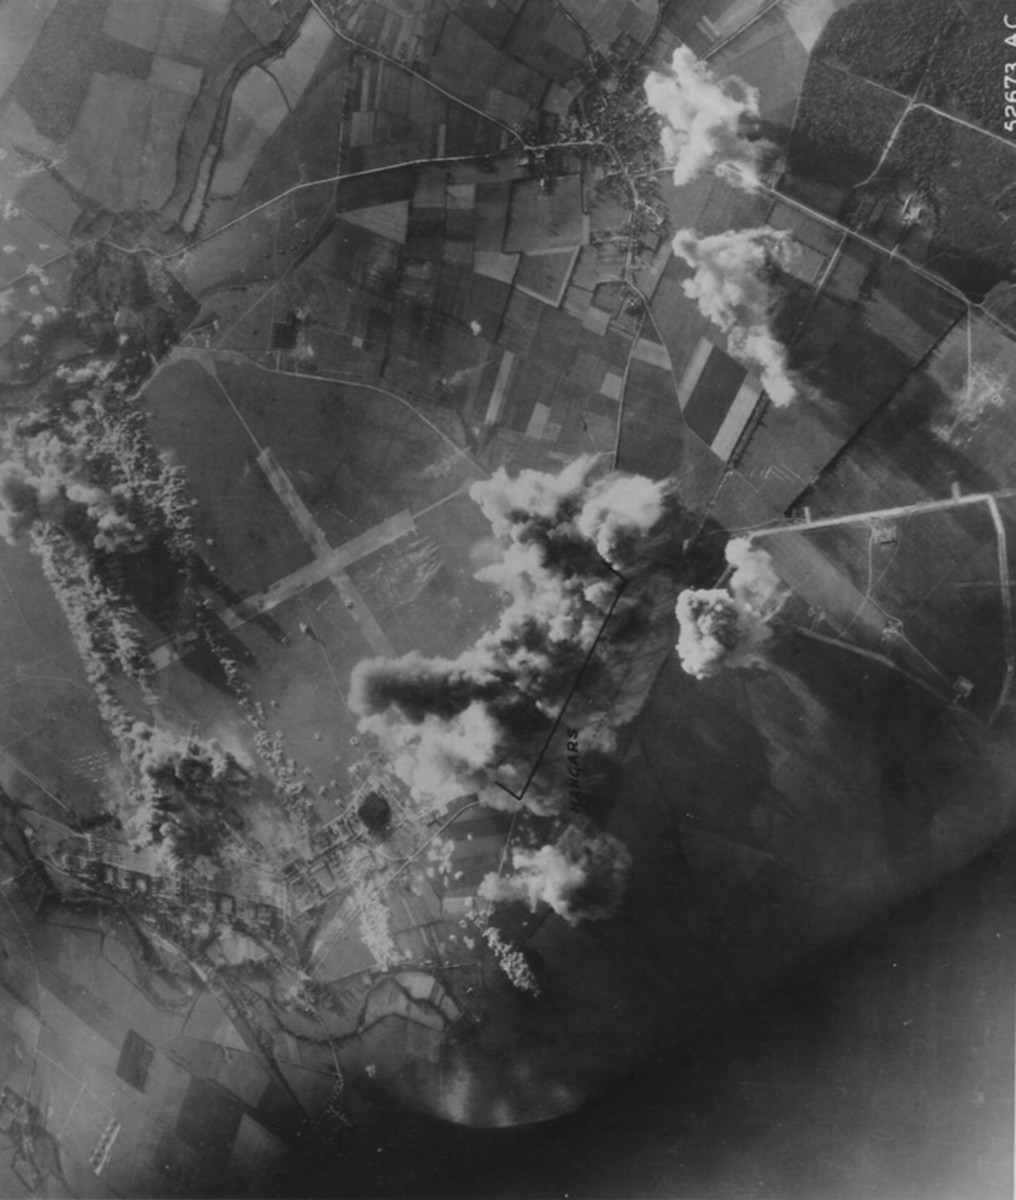 Strike Photo of Airfield, Avord France June 4, 1944